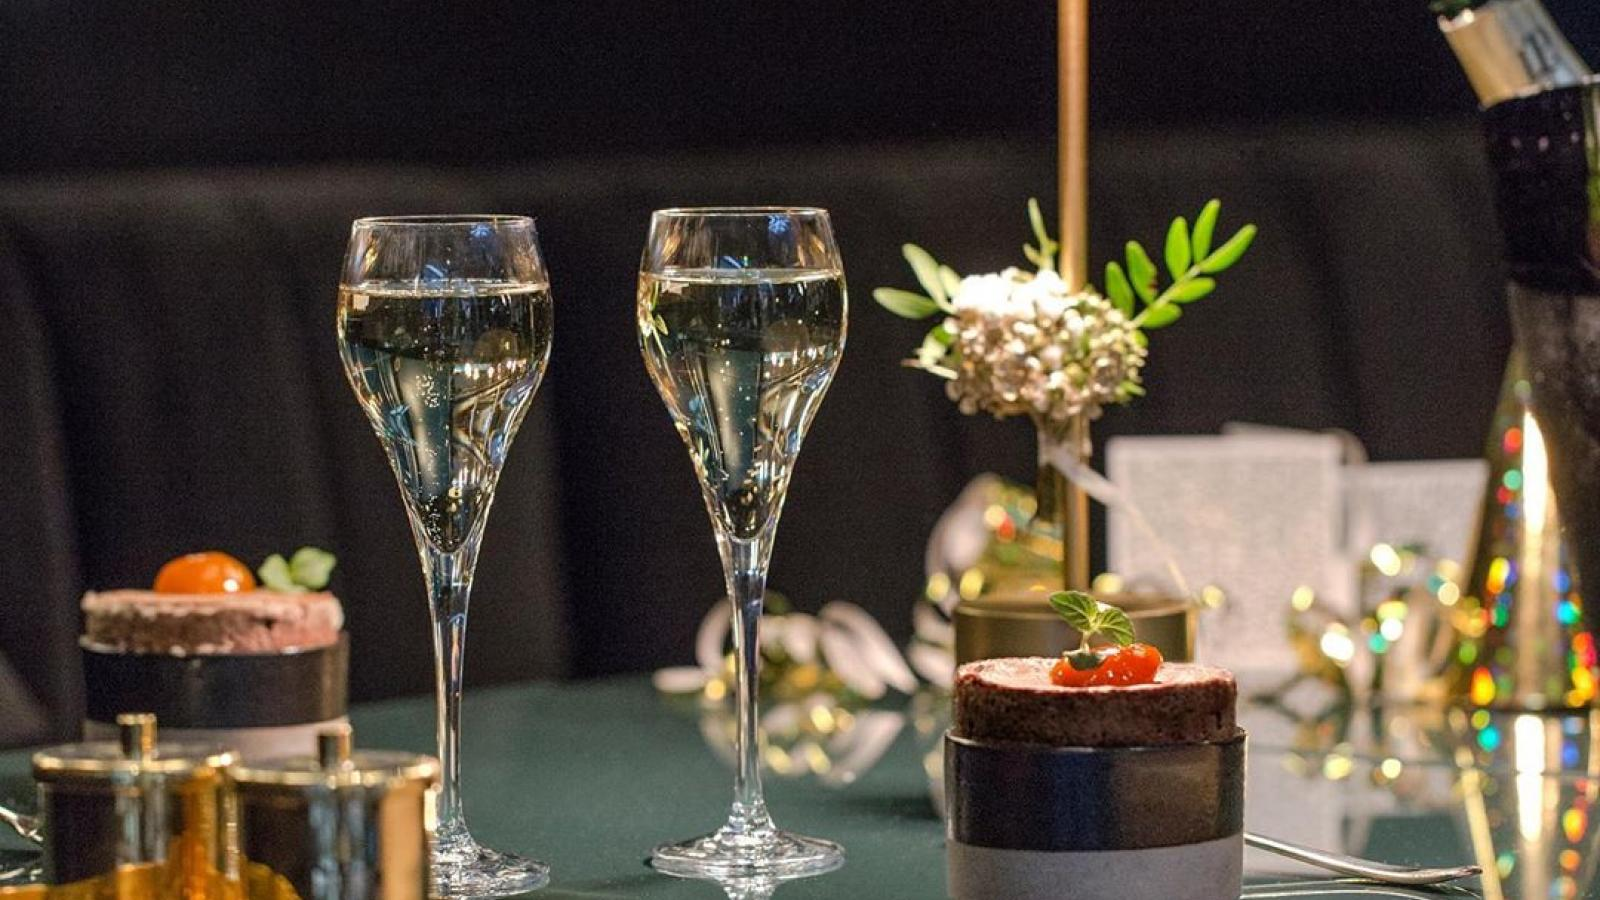 Our end-of-year menus at the Roch Hôtel & Spa